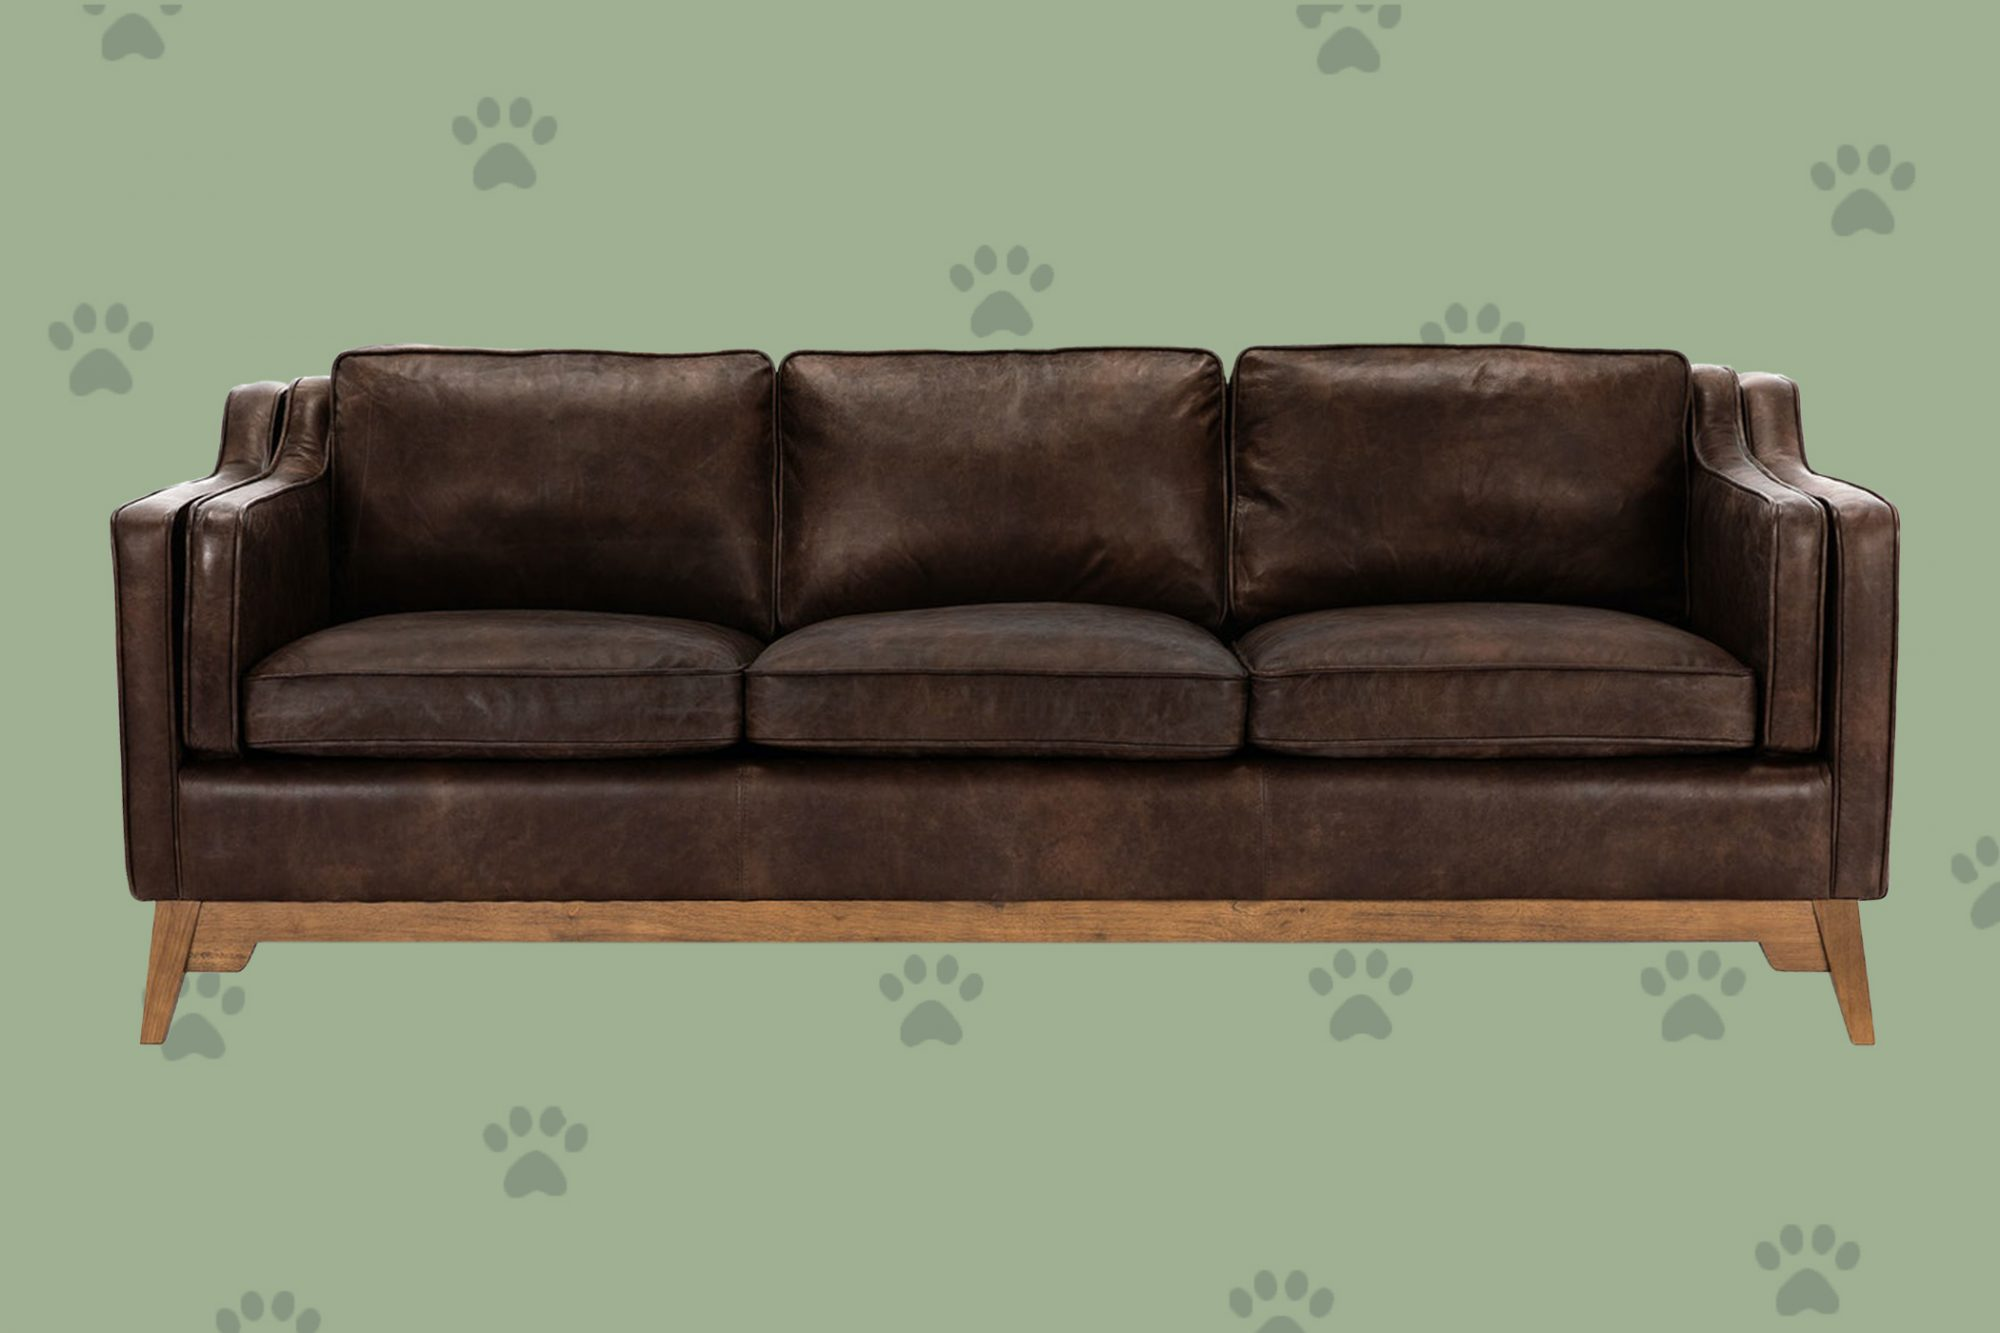 brown leather couch with wood frame